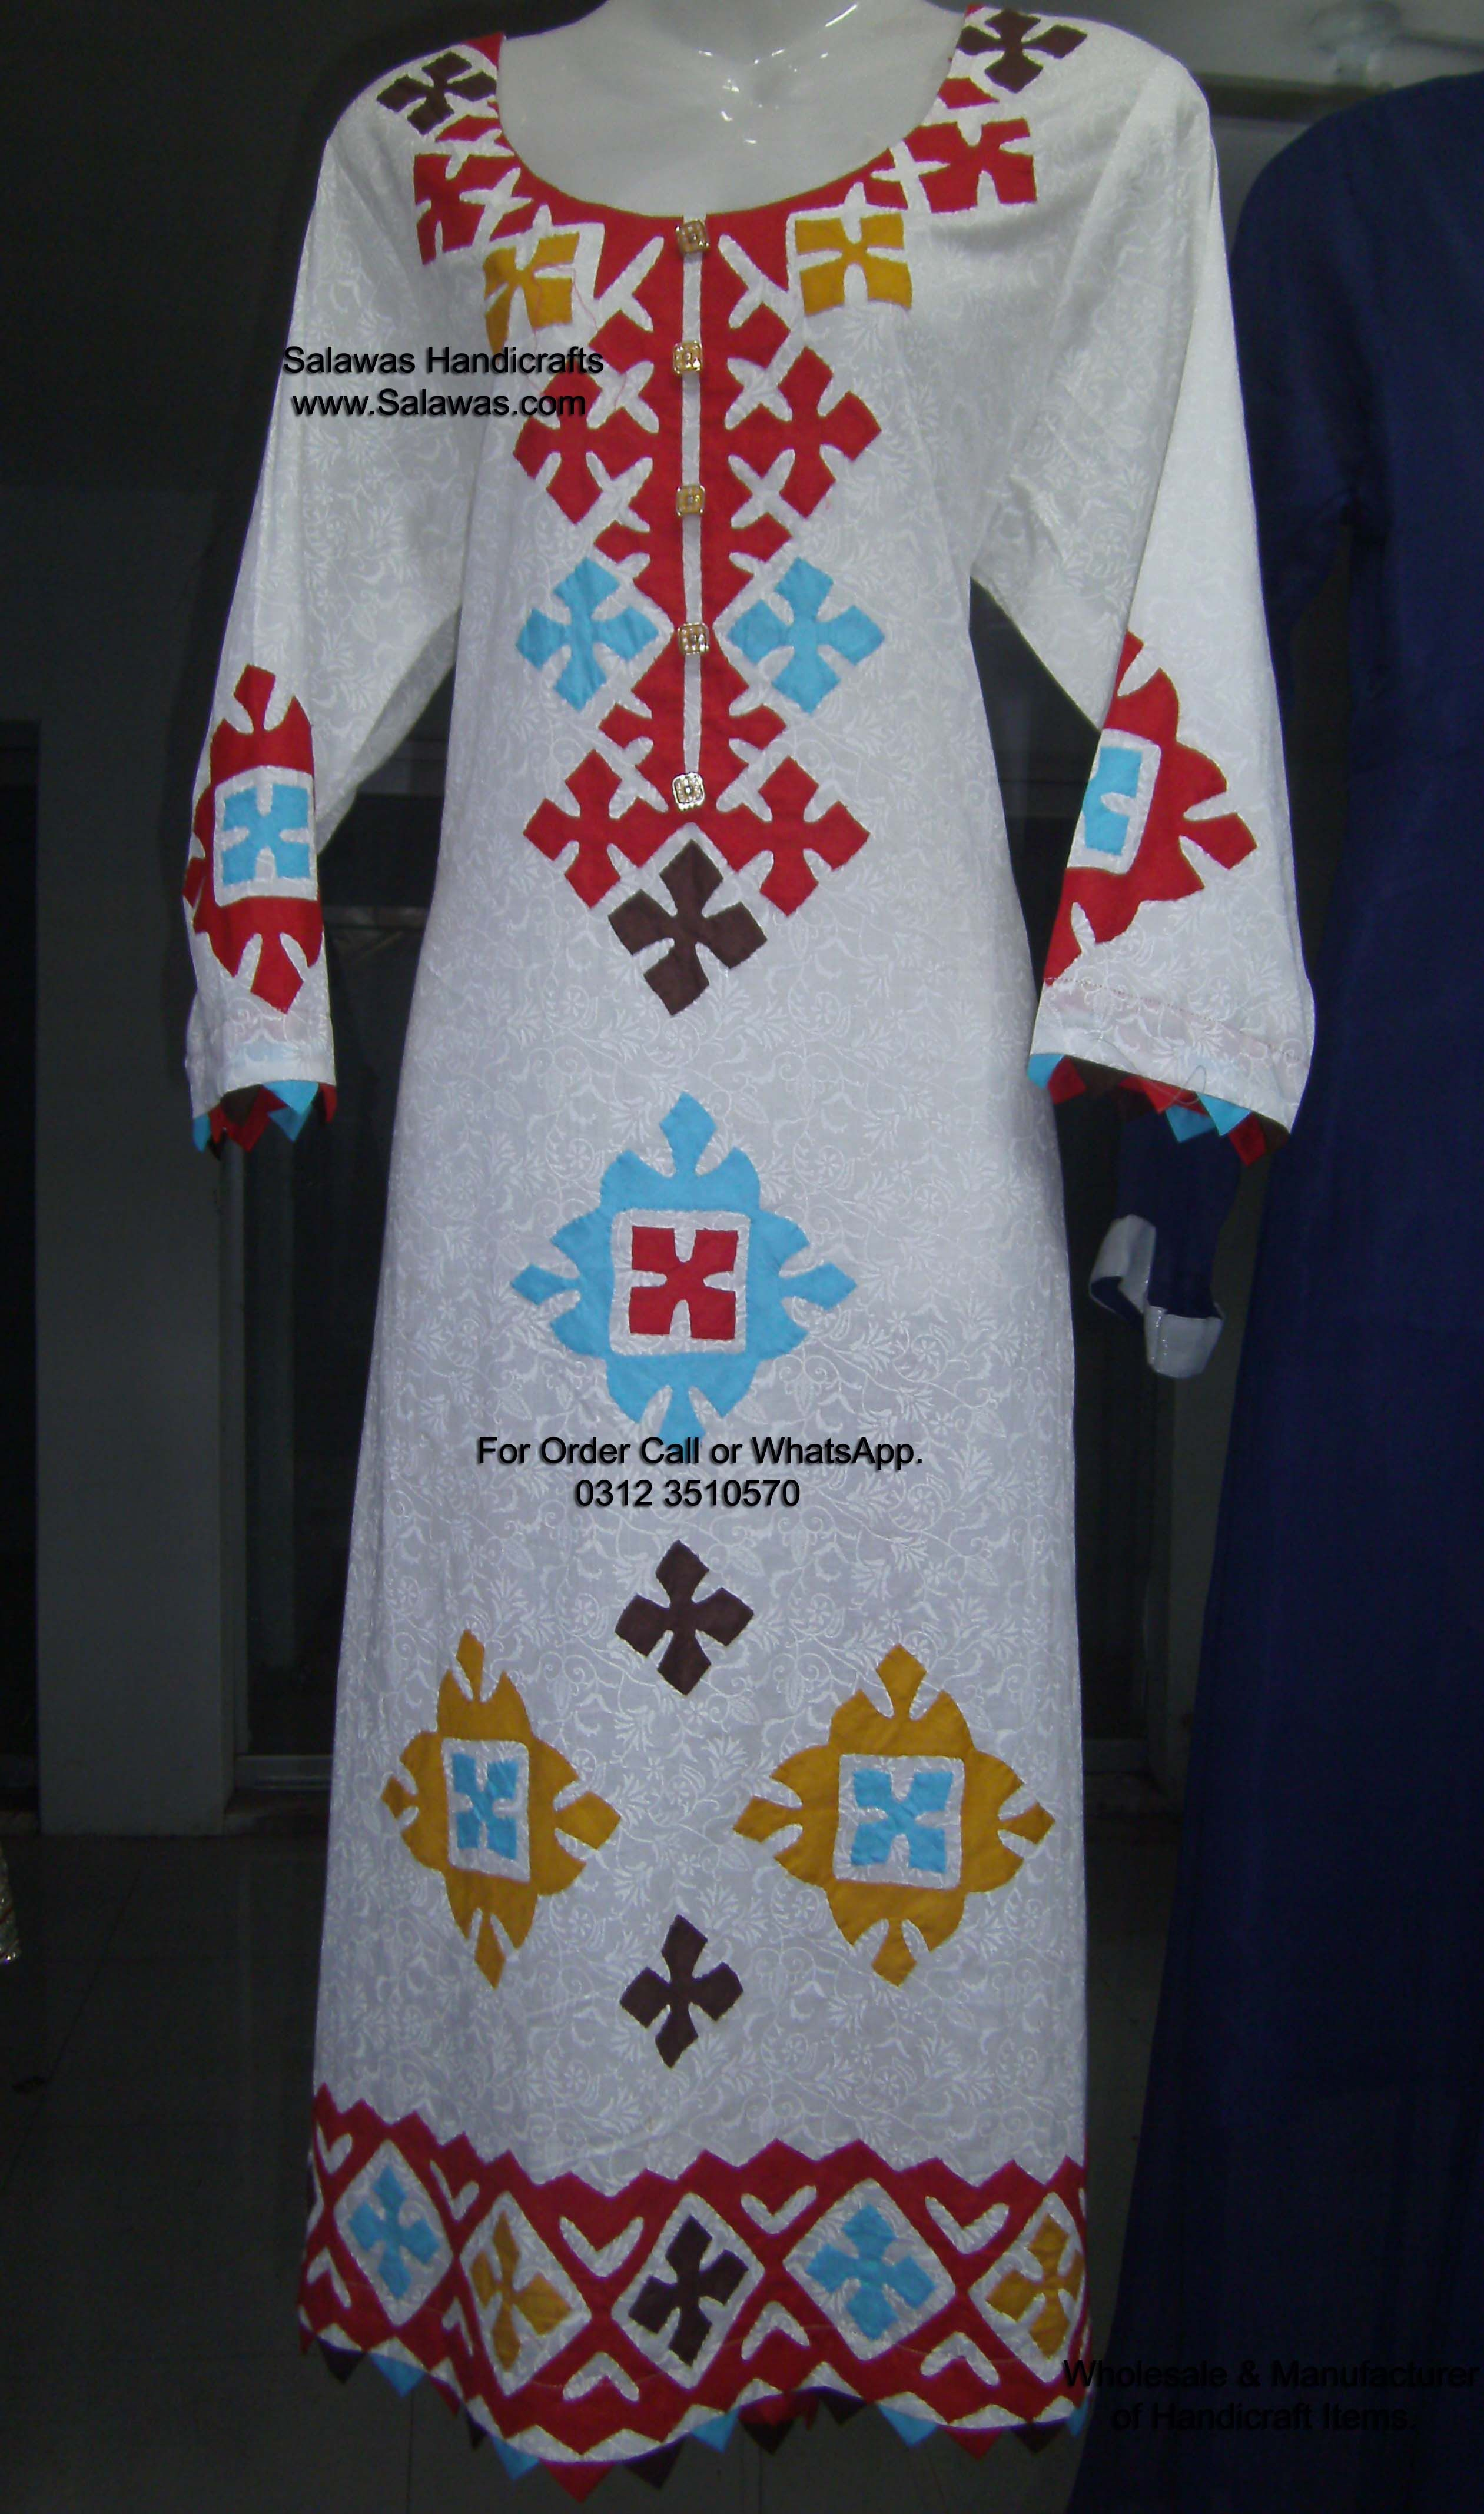 This is sindhi handmade aplic work on white dress | Aplic Work ... Homemade Dresses Designs on homemade rings designs, arts & crafts designs, homemade earrings designs, homemade shoes designs, homemade bags designs, hoodies designs, homemade beauty tips, homemade jewelry designs, homemade shirt designs, homemade bracelets designs, homemade jewellery designs,